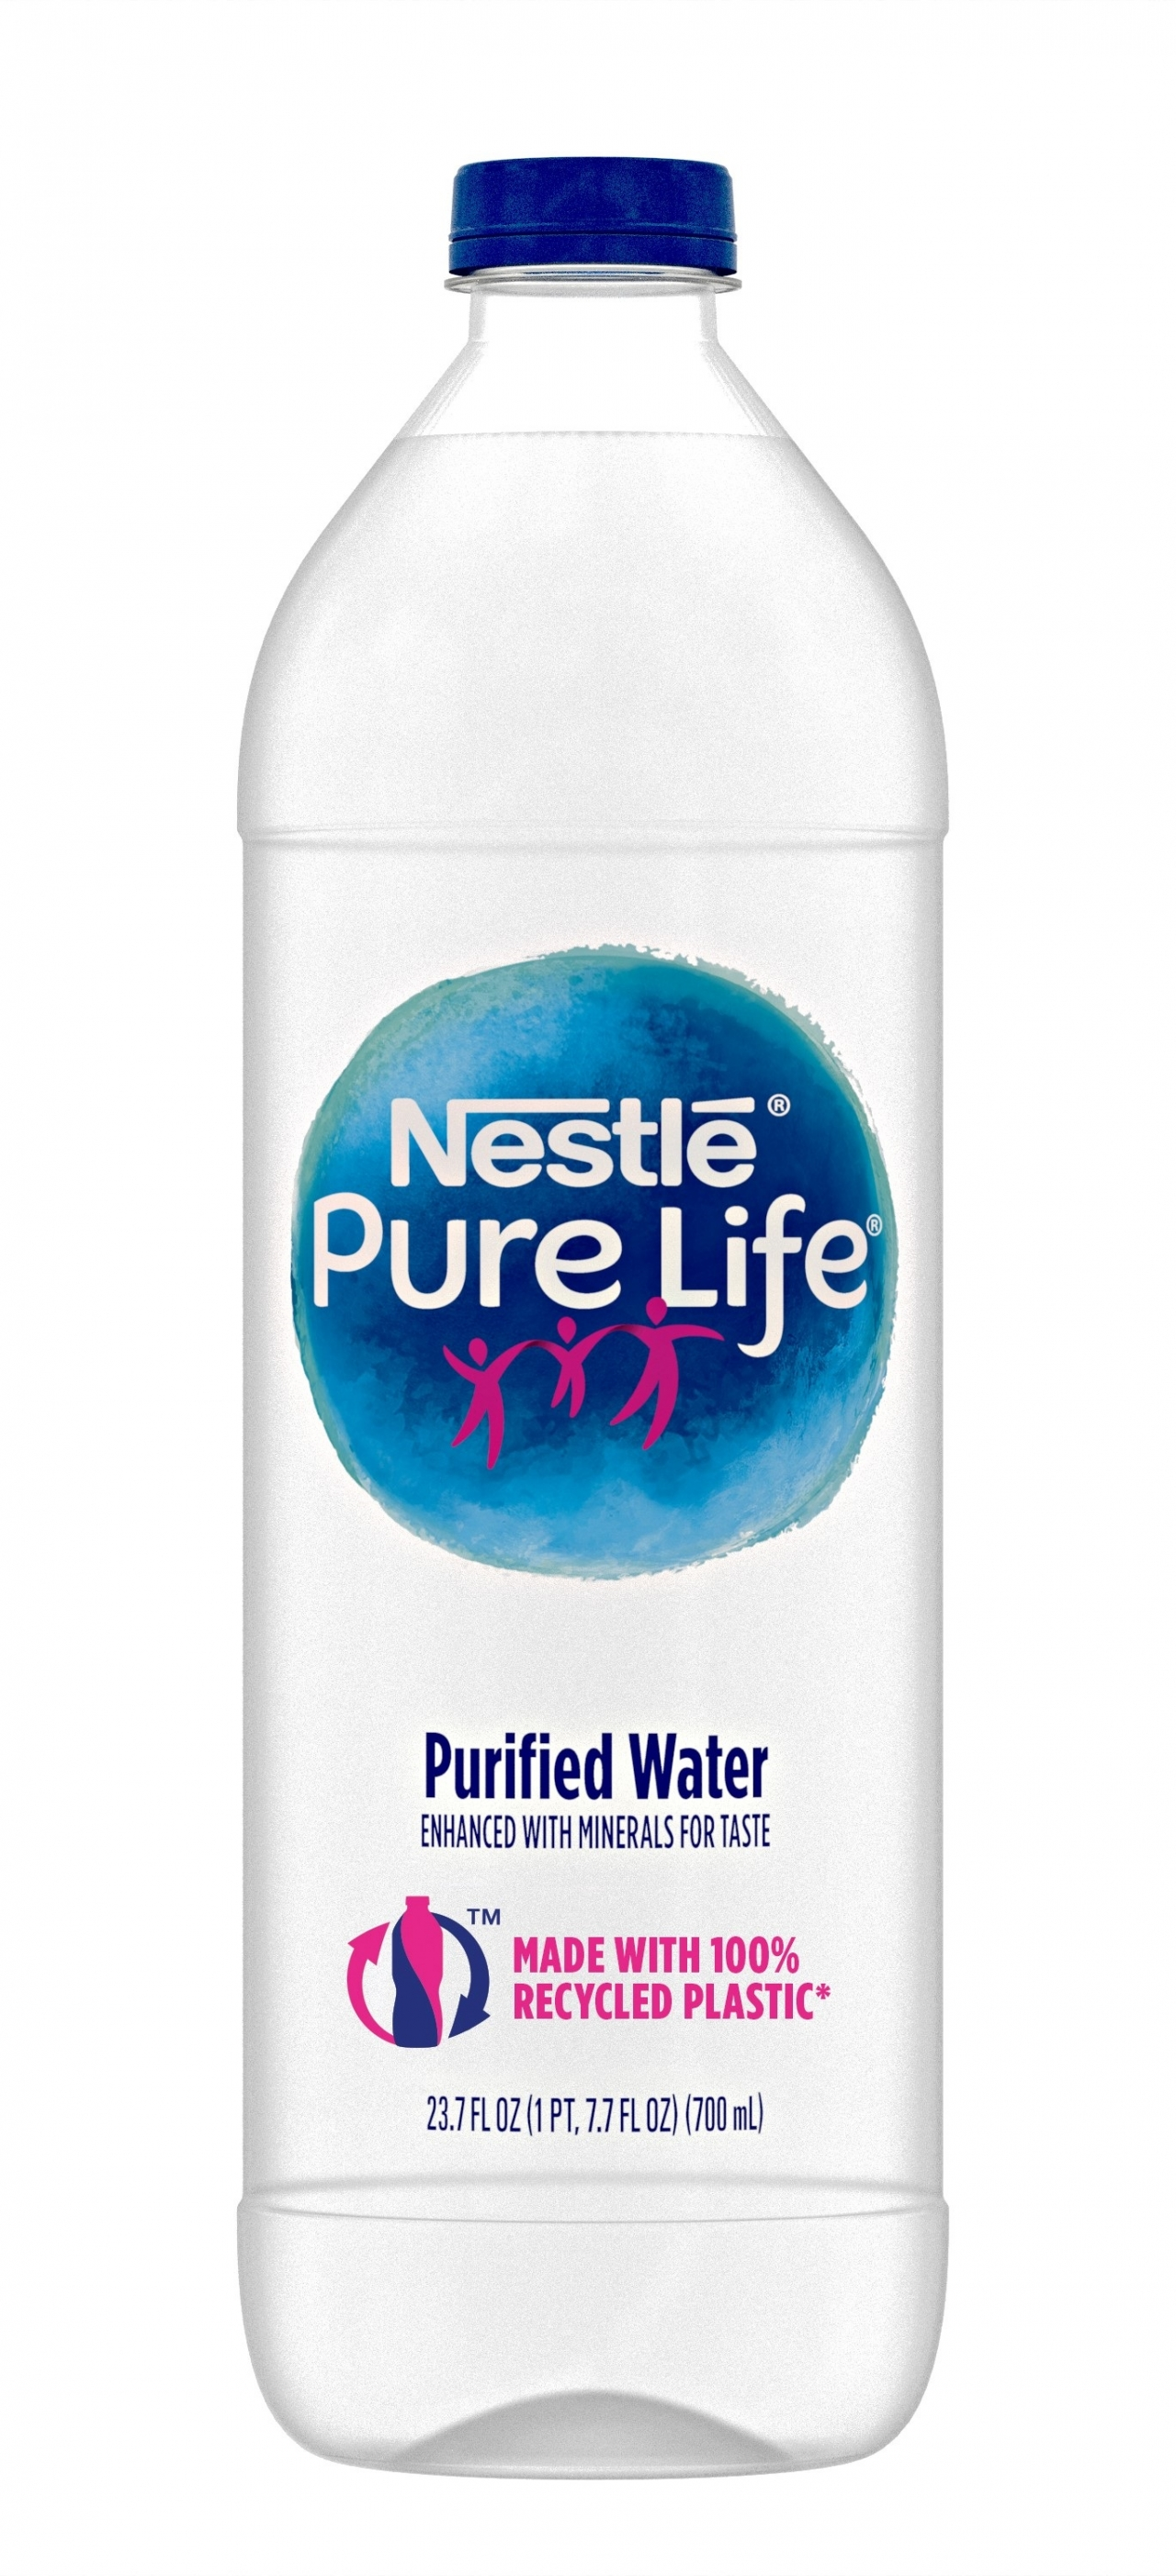 Nestlé® Pure Life® Purified Water Launches New Bottle Made ...  Nestlé® Pure ...